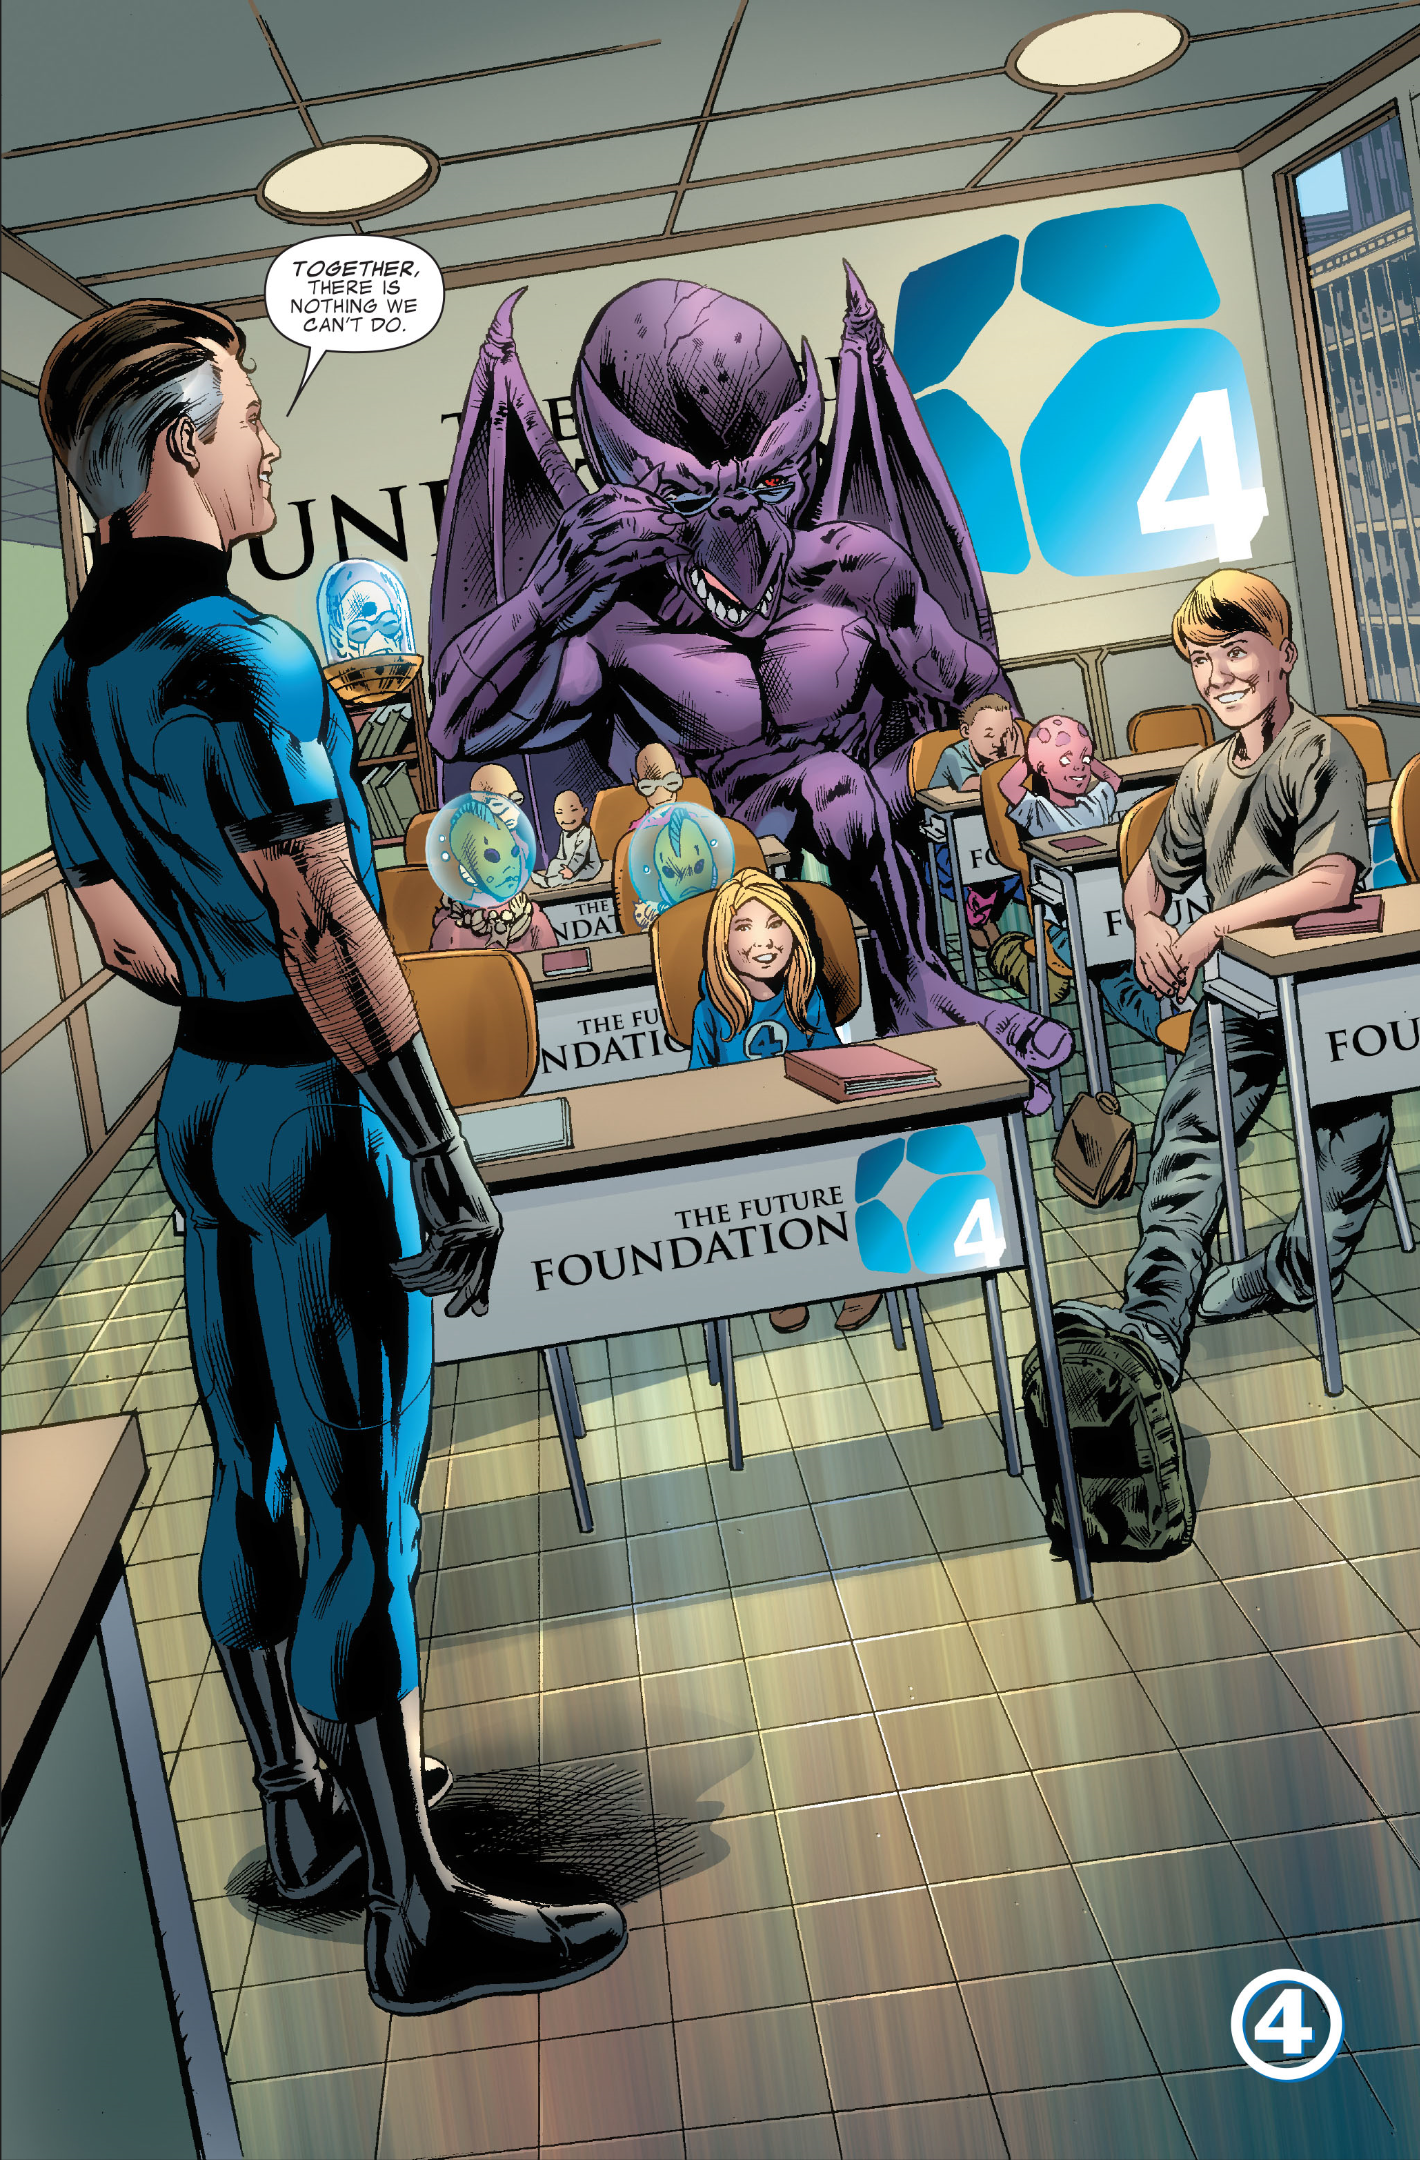 Fantastic Four #579, art by Neil Edwards, Andrew Currie, and Paul Mounts